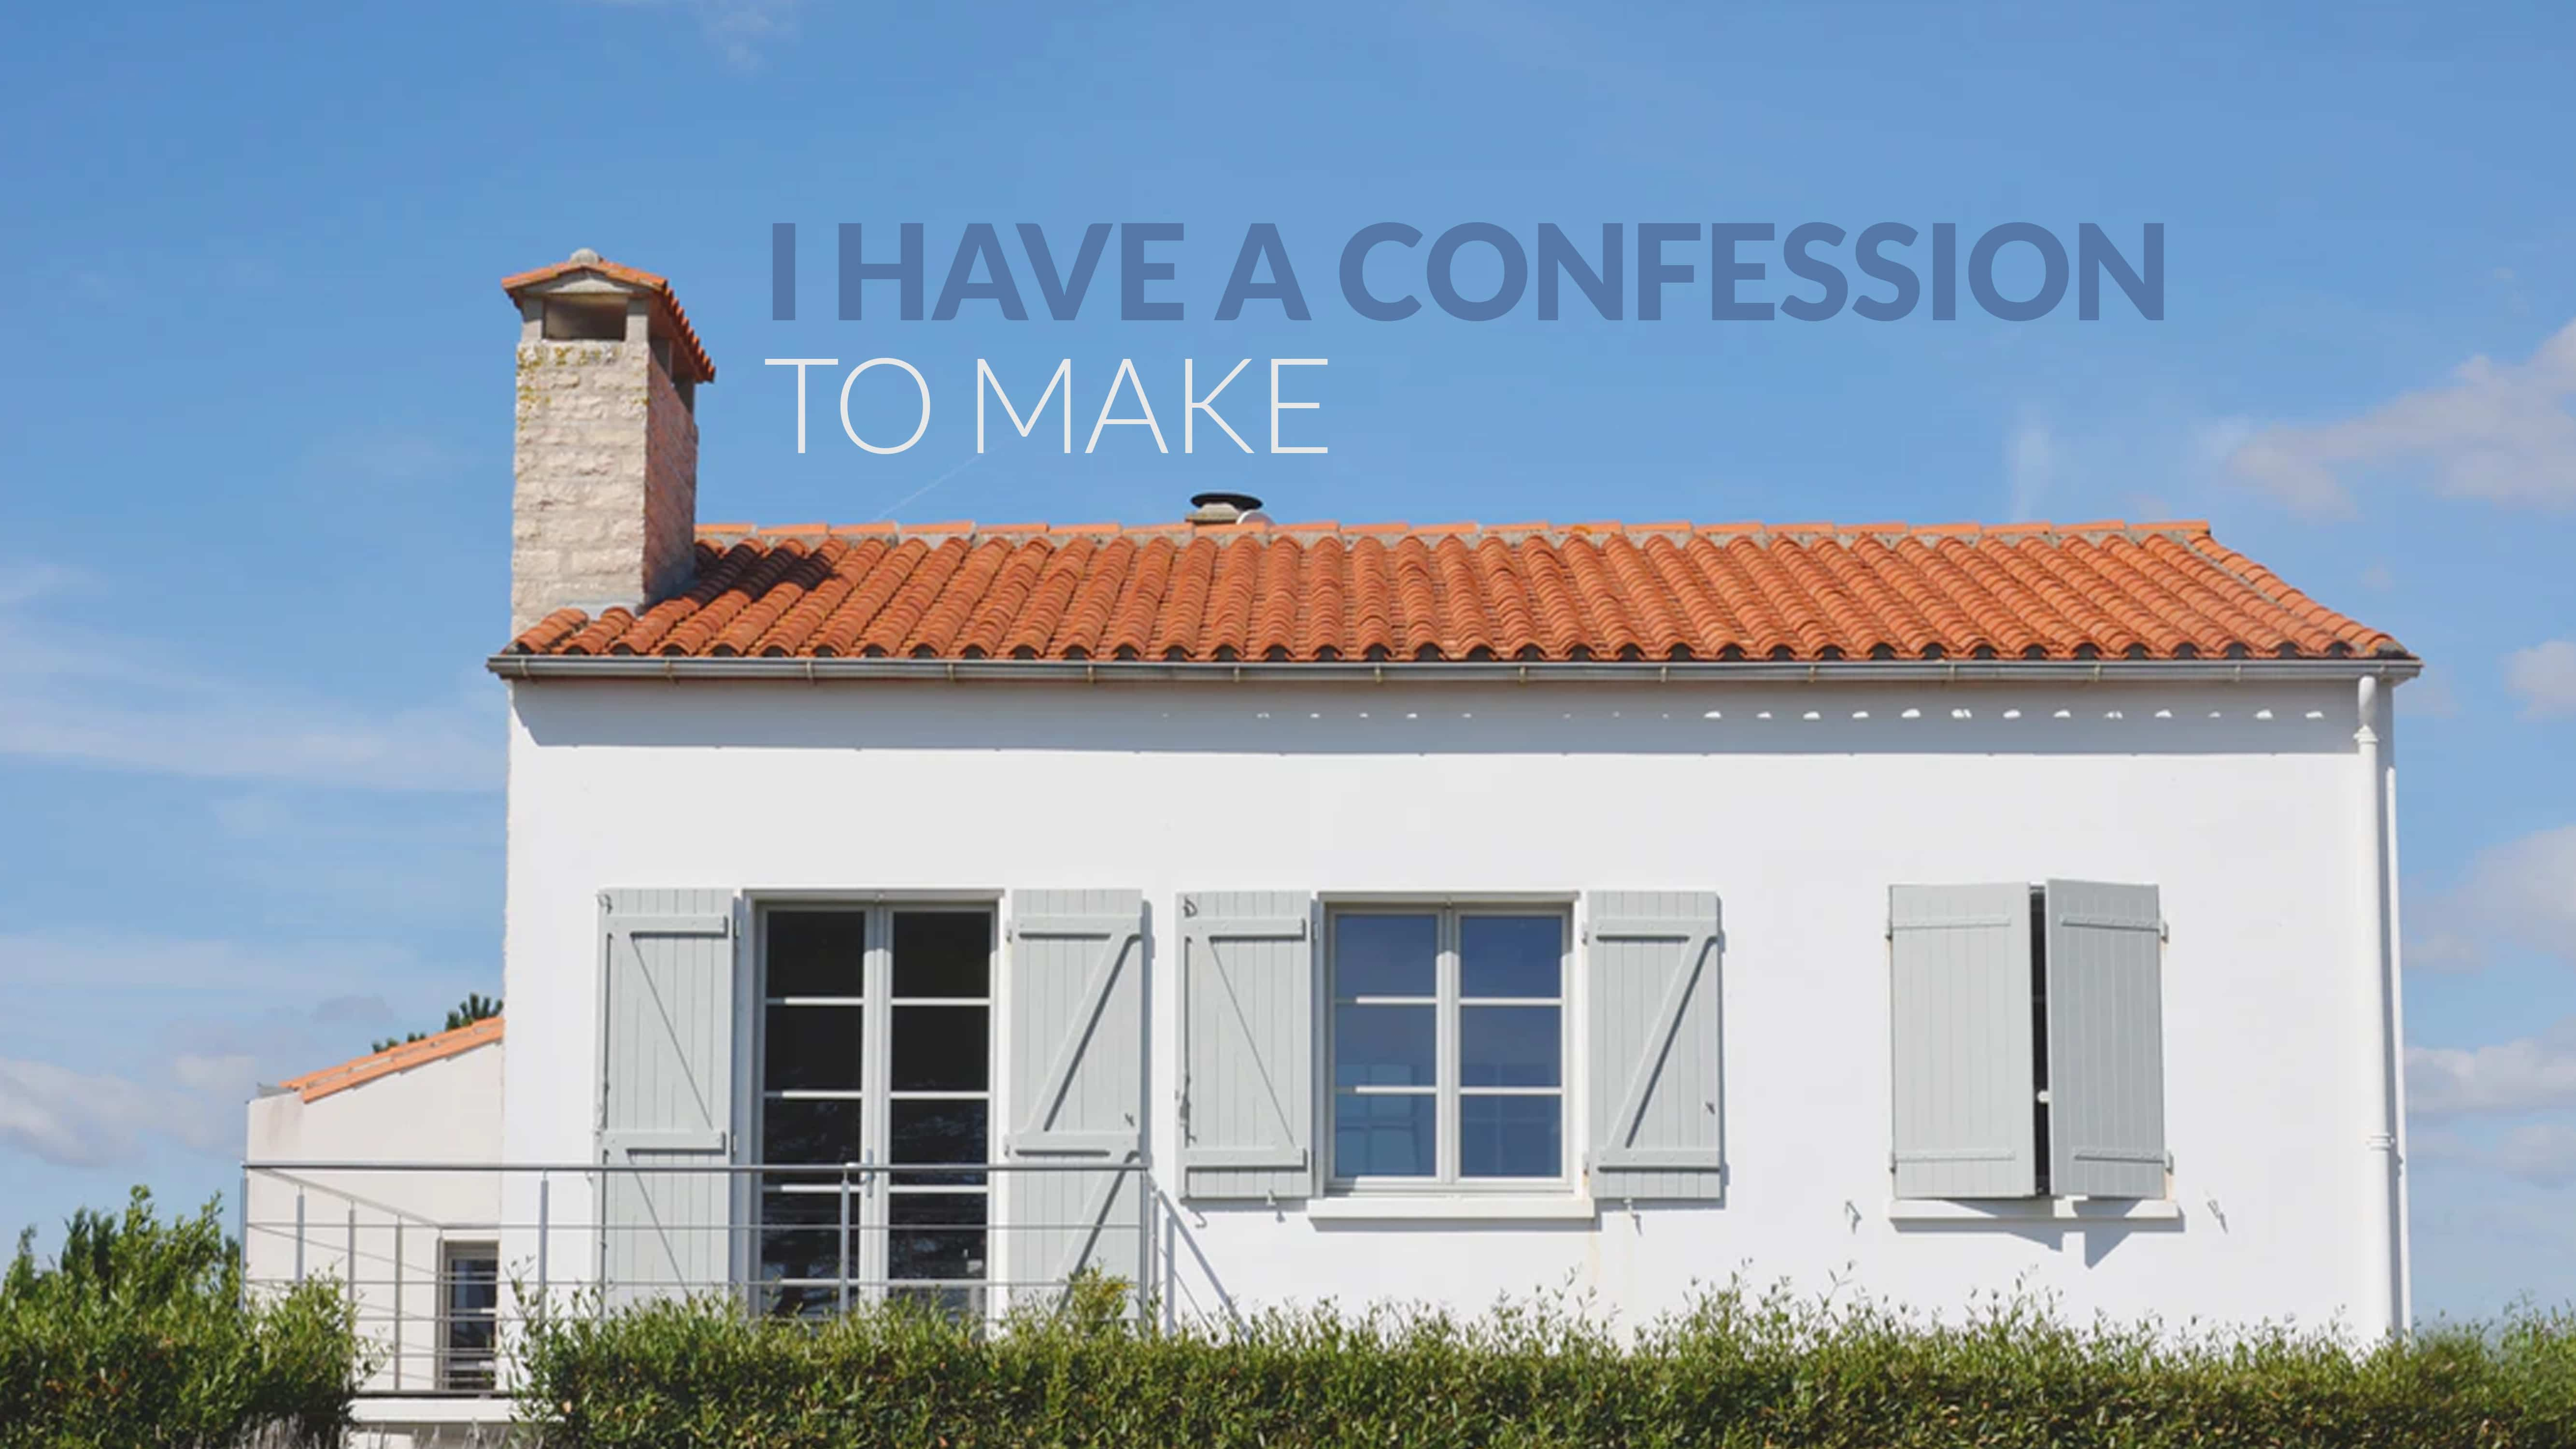 I have a confession to make